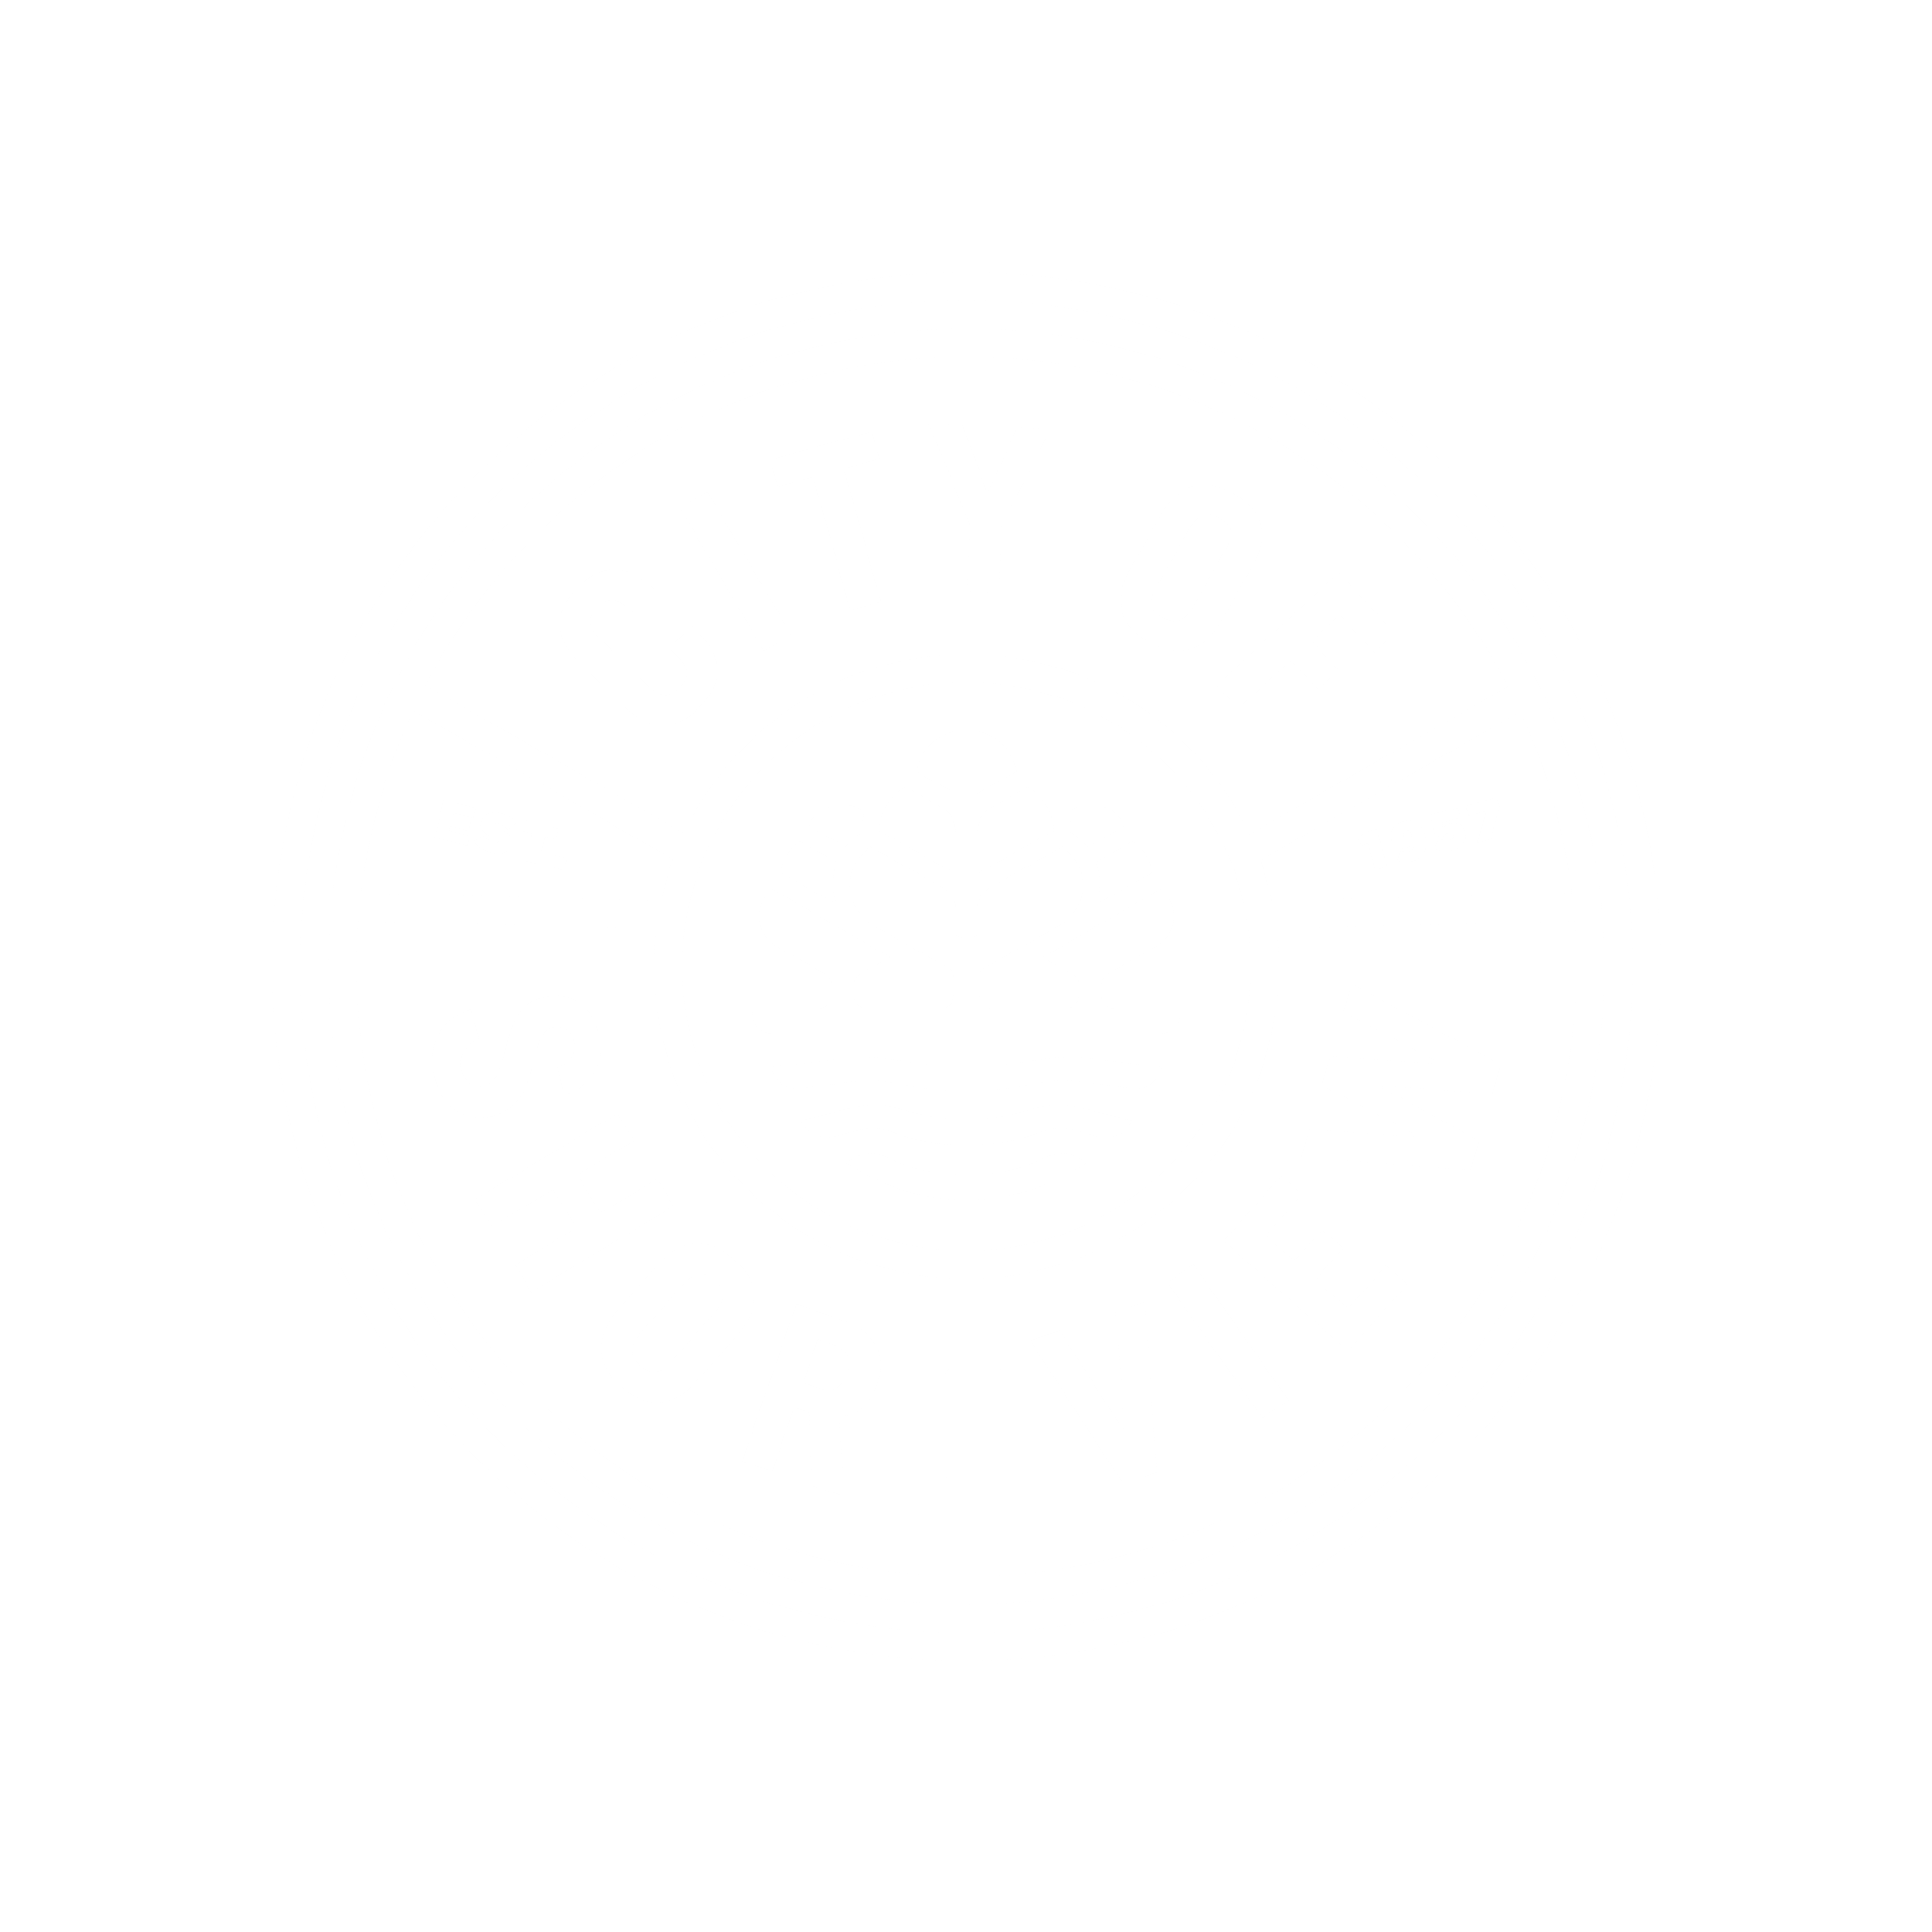 Shoreview_Logo_White_CityOfBadge